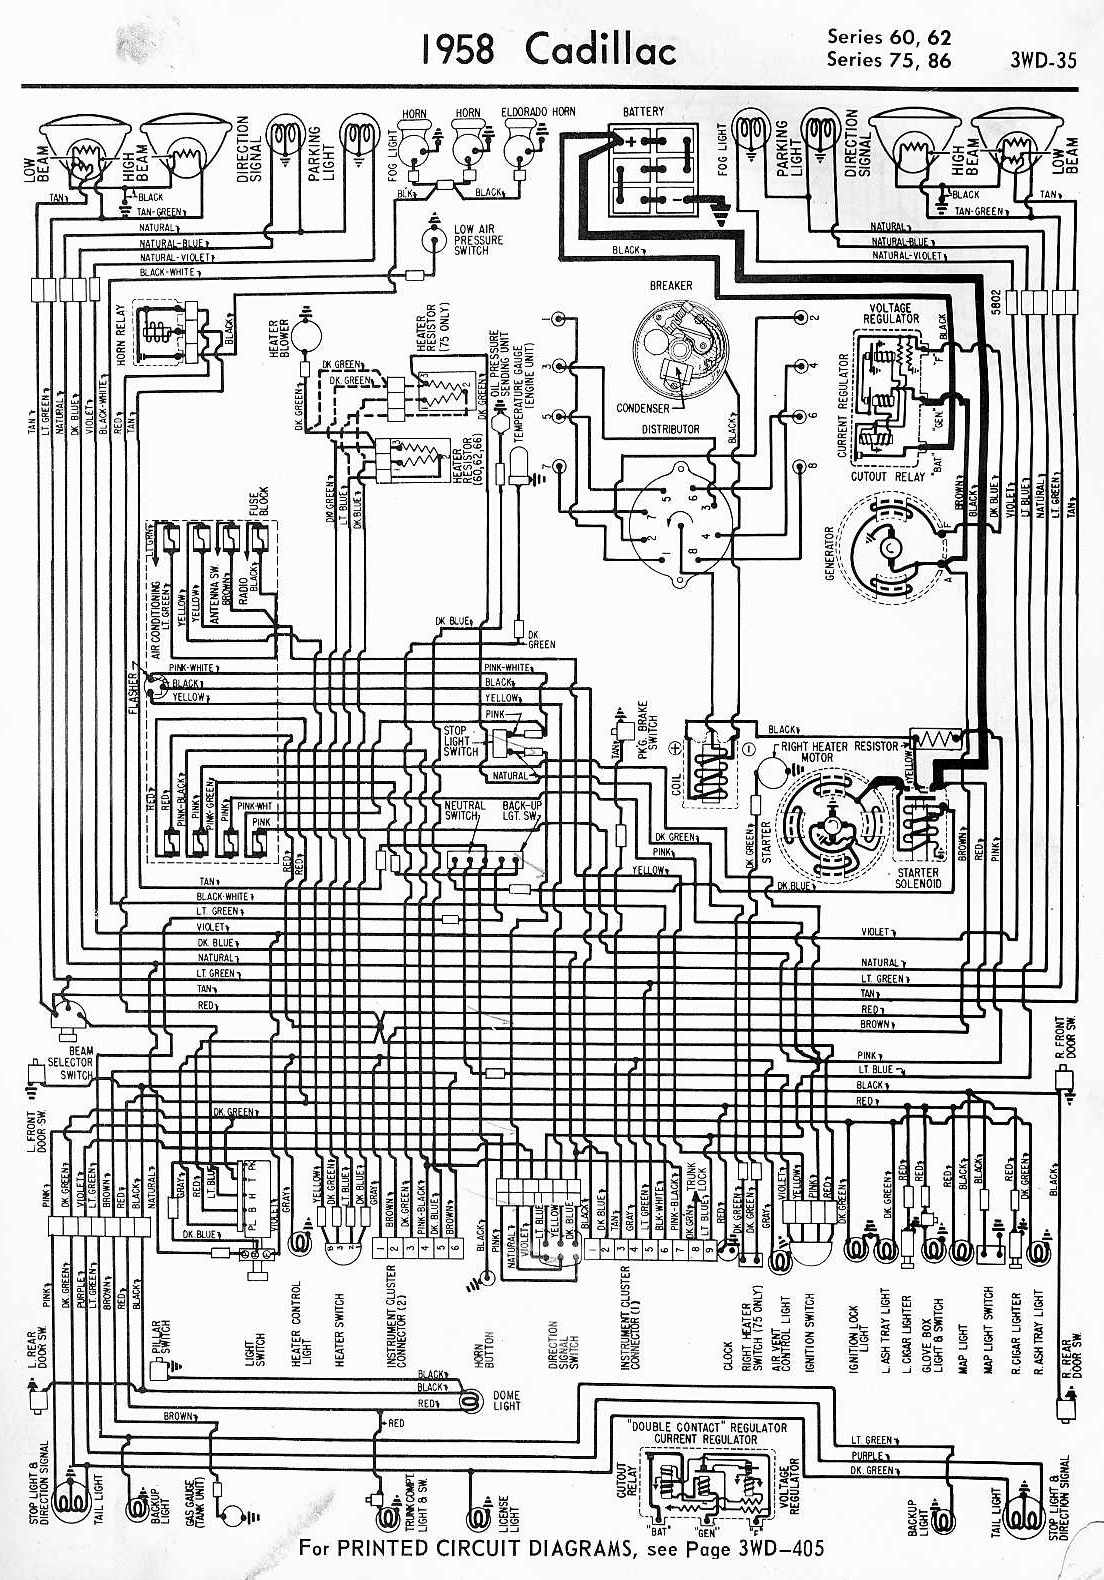 Cadillac Car Manuals Wiring Diagrams Pdf Fault Codes Xlr Engine Diagram Download